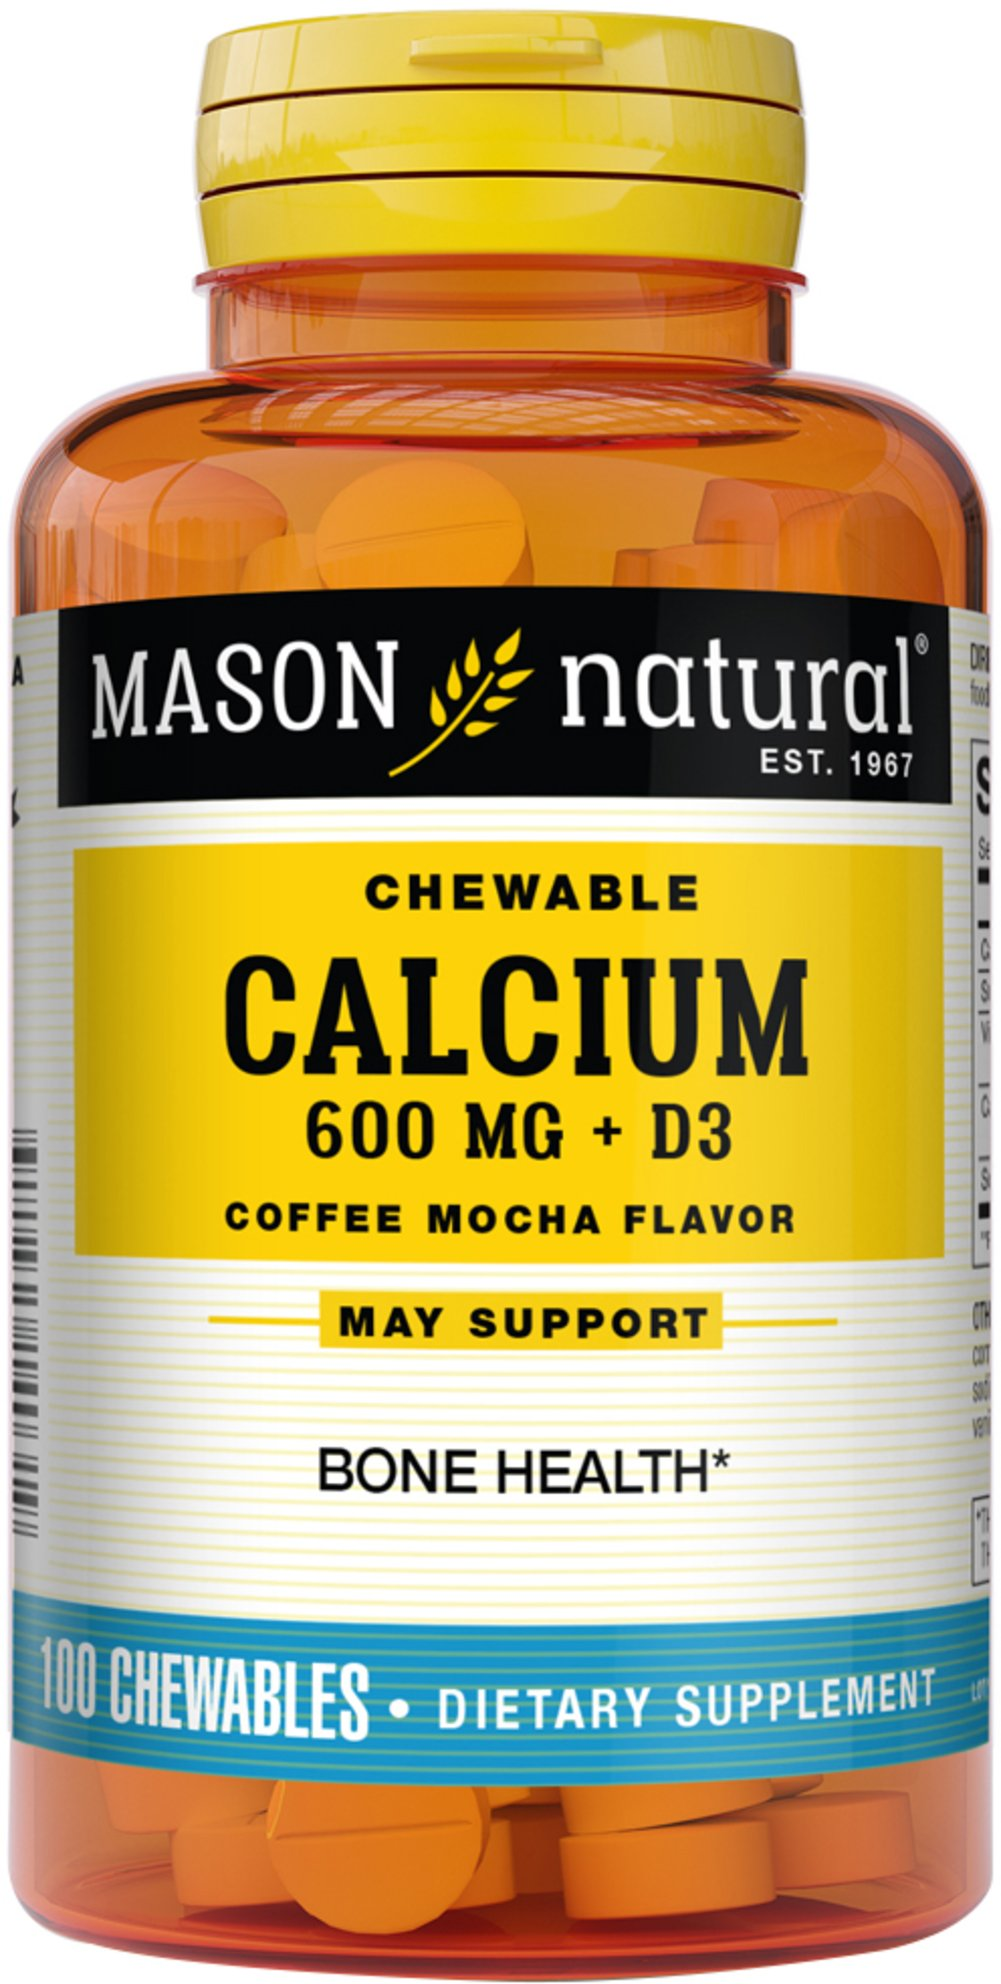 Chewable Calcium 600 plus D3 <strong></strong><p><strong>From the manufacturer's label:</strong></p><p>Mason Chewable Super Calcium contains  600mg of Calcium and  +  400iu of Vitamin D3.</p><p>Coffee Mocha Flavor.</p><p>Manufactured by Mason Vitamins</p><p></p> 100 Chewables 600 mg/400 IU $6.49